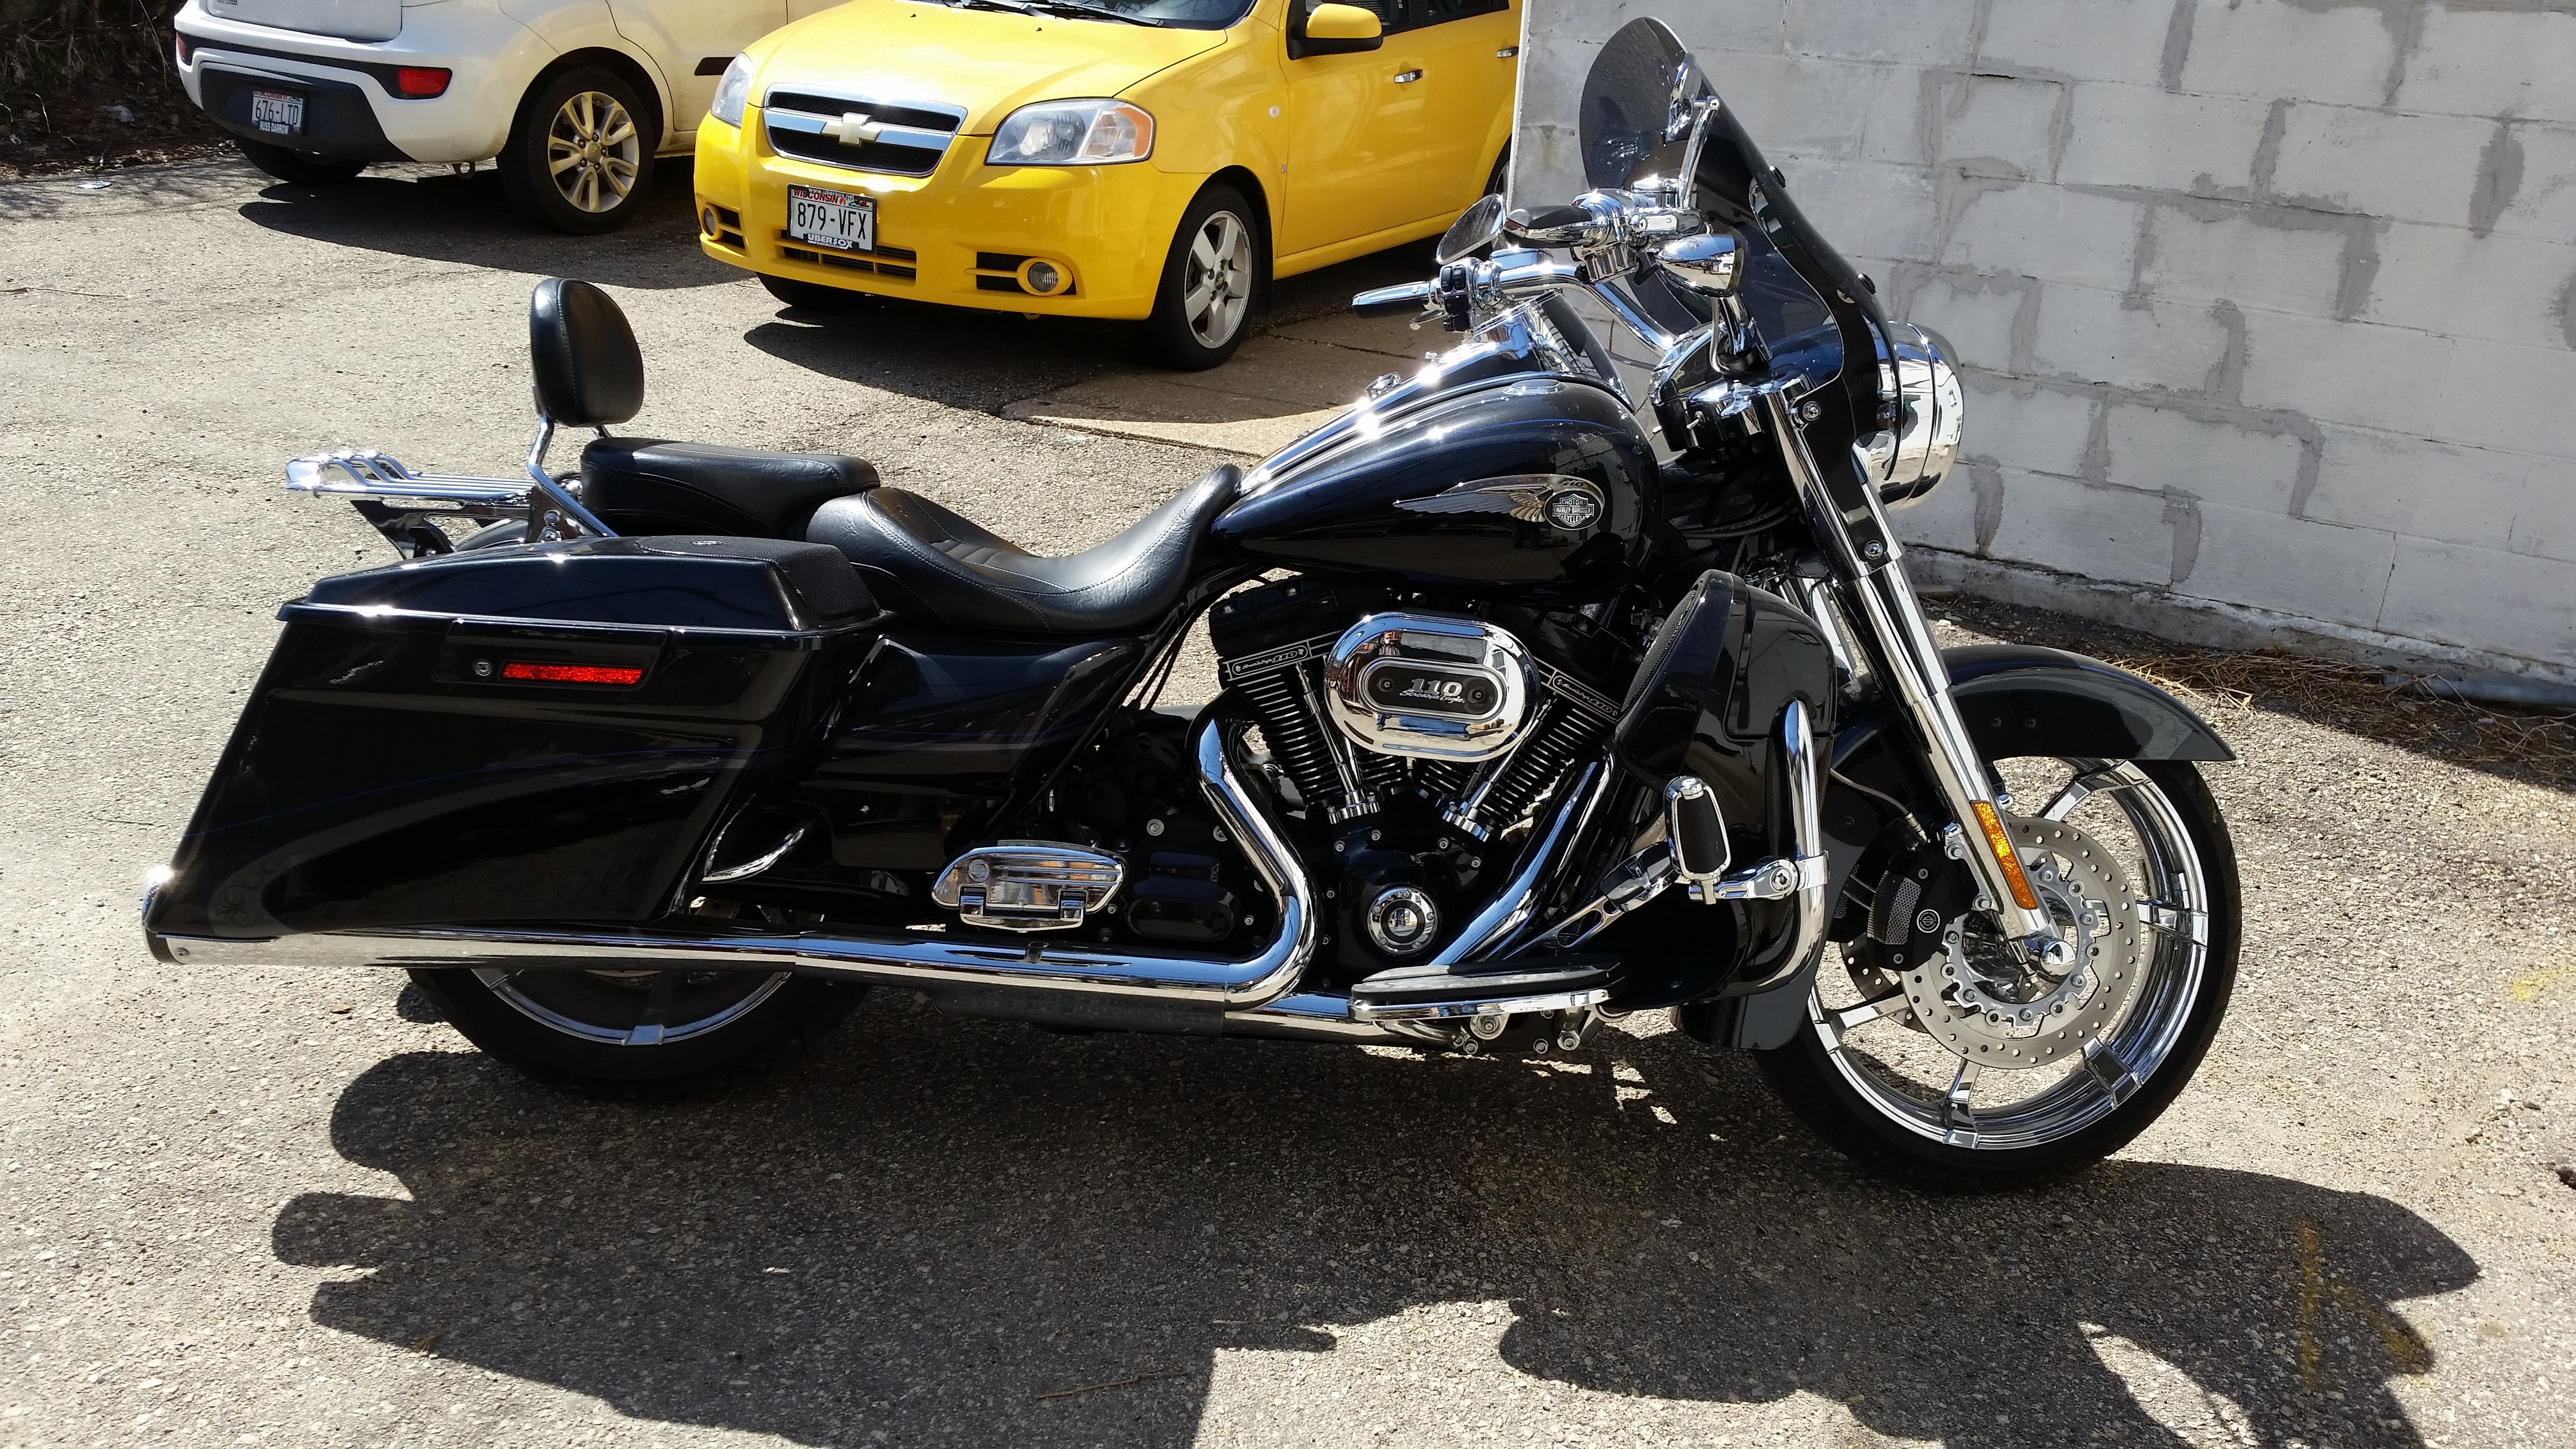 Harley Softail For Sale Georgia >> All New & Used Harley-Davidson® CVO Road King® For Sale (54 Bikes, Page 1) | ChopperExchange